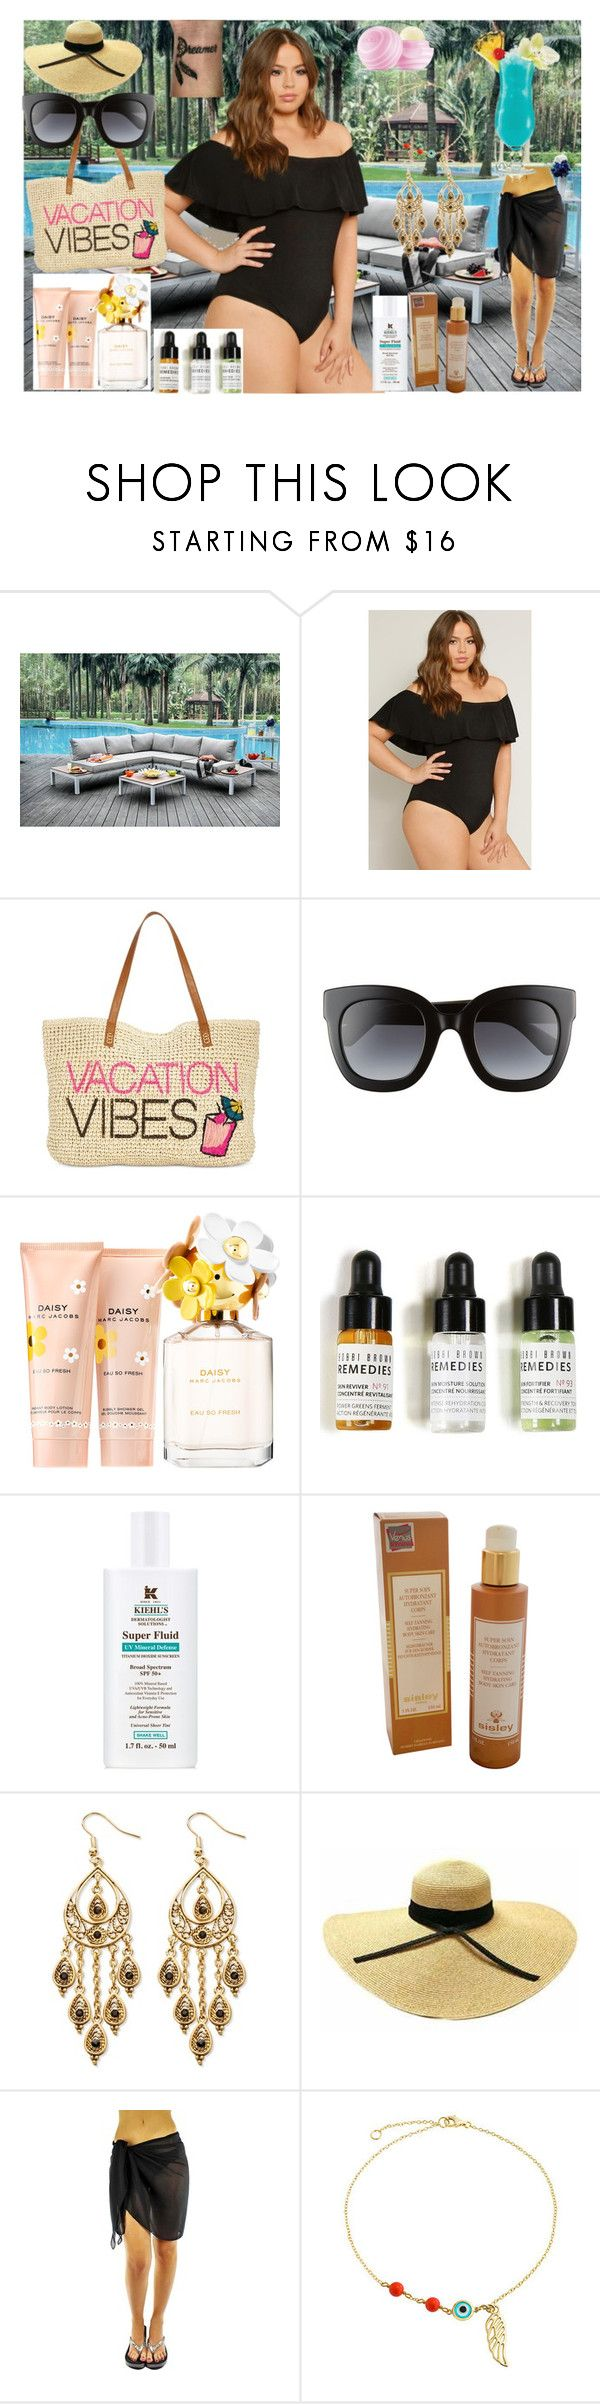 """""""""""Long Weekend ☀️🏝"""""""" by nova5ta5ia ❤ liked on Polyvore featuring INC International Concepts, Gucci, Marc Jacobs, Bobbi Brown Cosmetics, Kiehl's, Sisley, Palm Beach Jewelry, Bling Jewelry, Eos and TIKI"""